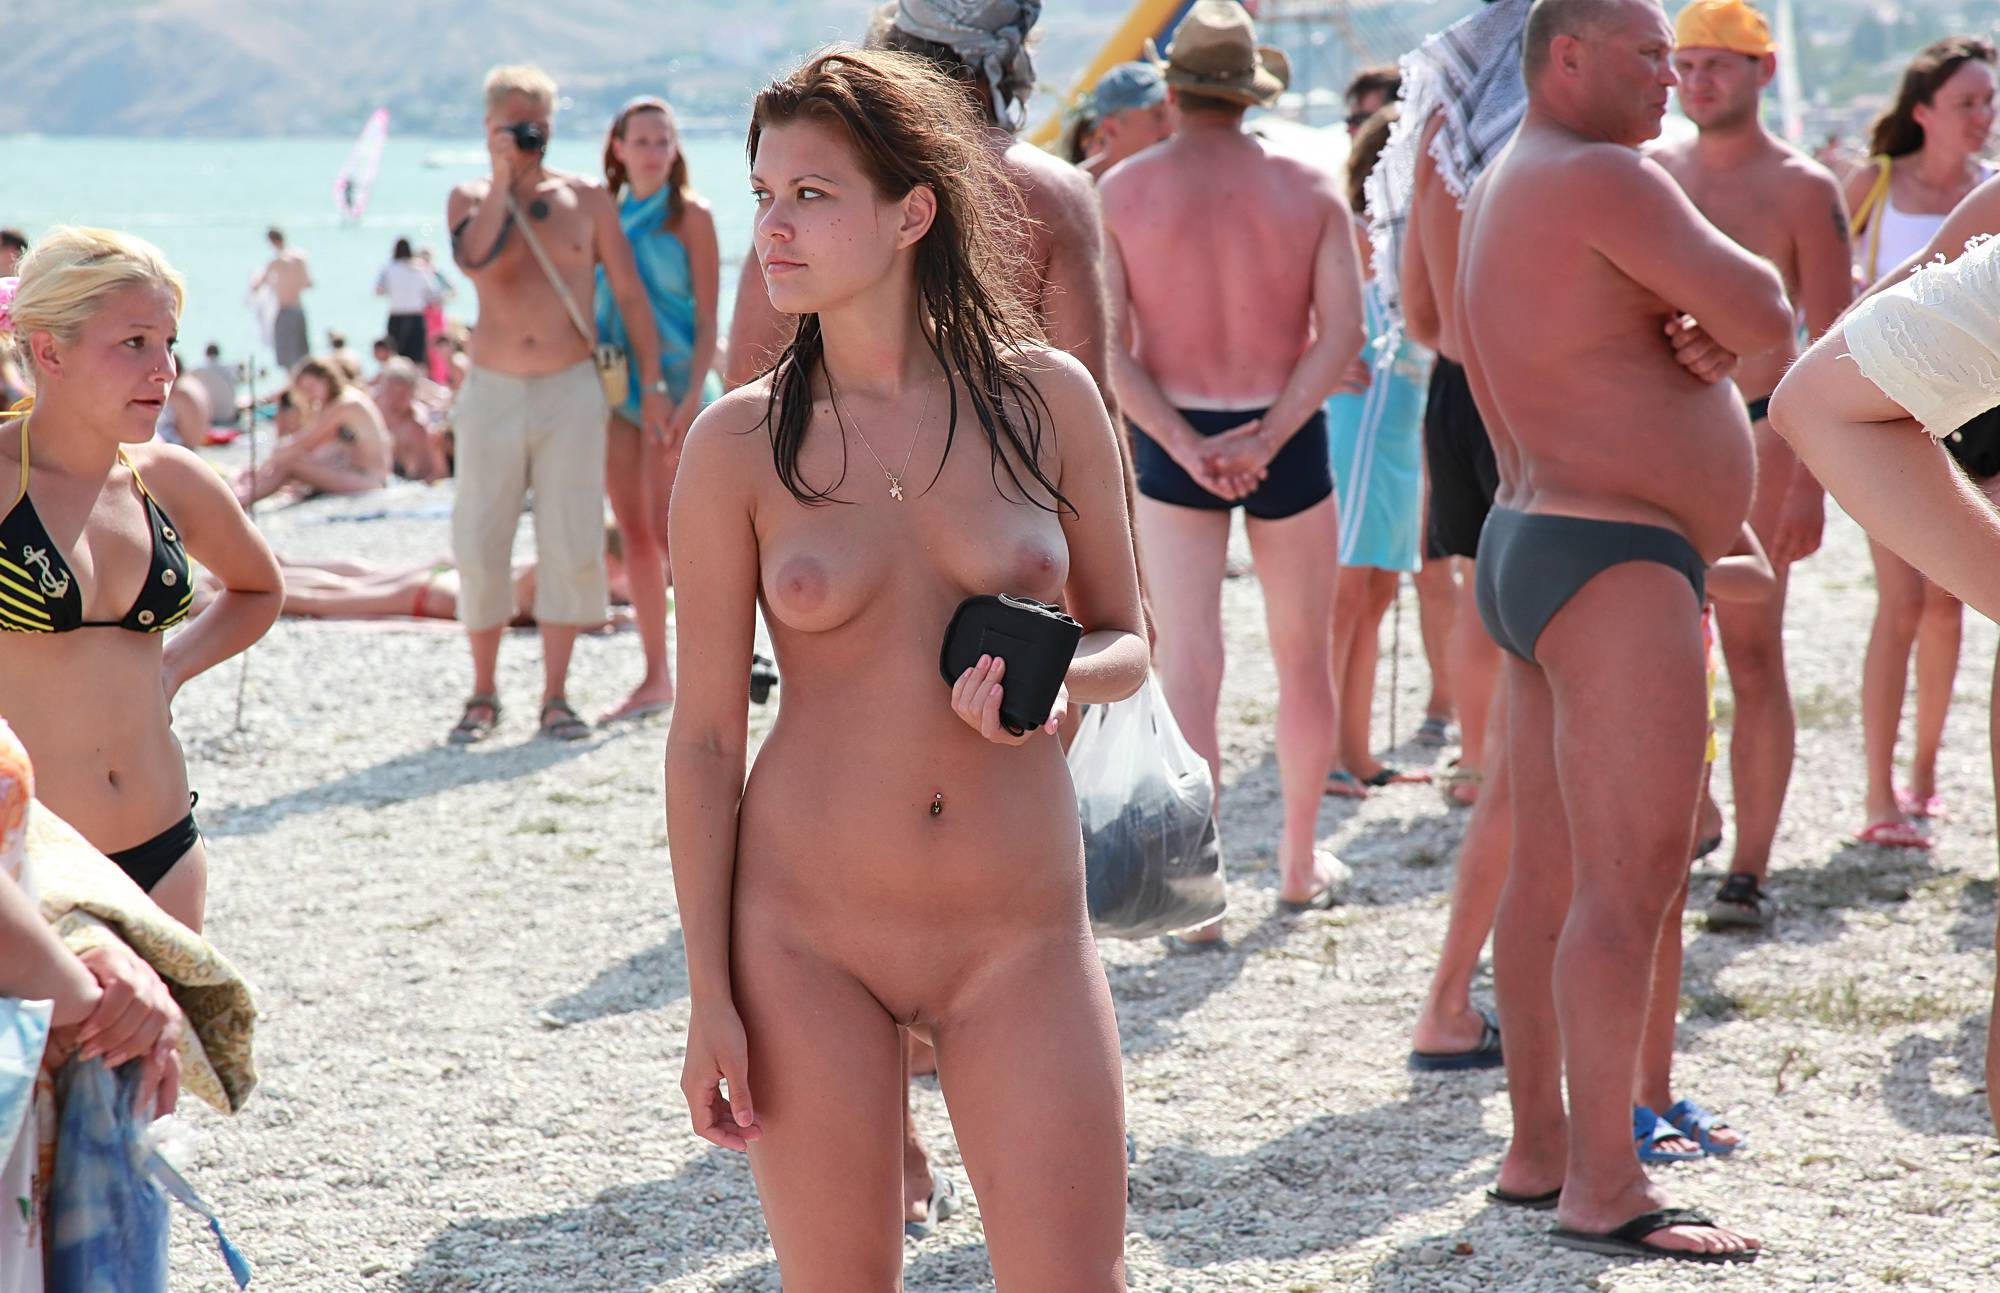 Nudist Gallery Sun-Lit Beach Naturists - 1